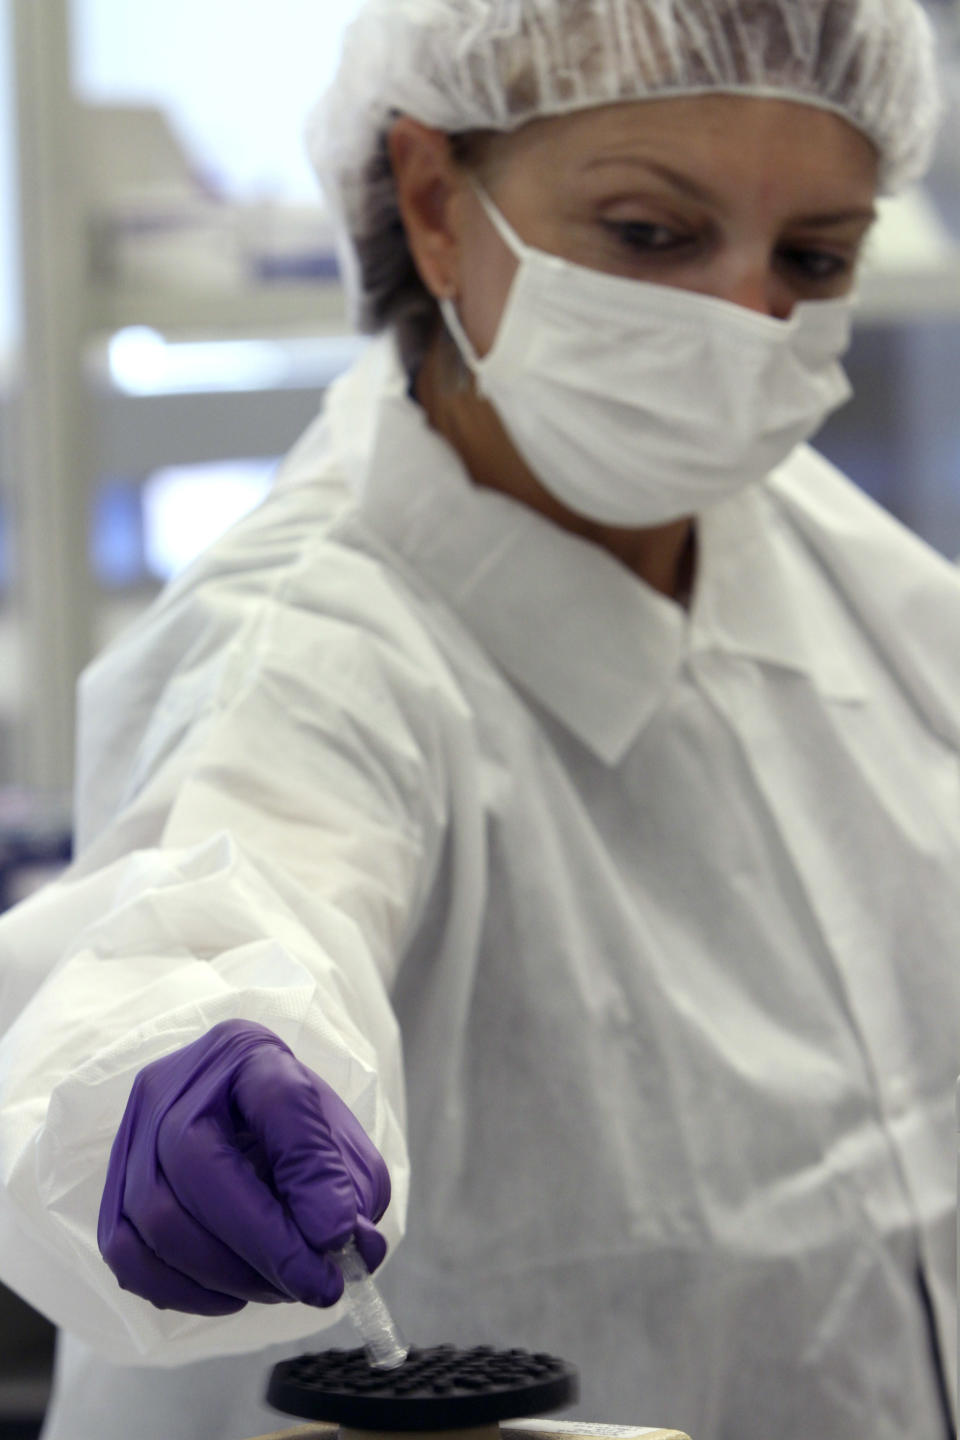 This Wednesday, Aug. 10 2011 photo shows Tatyana Gryazeva, right, a criminalist at the Office of Chief Medical Examiner, during an demonstration on extracting DNA at a training lab of the OCME Forensic Biology Lab in New York.  (AP Photo/Mary Altaffer)